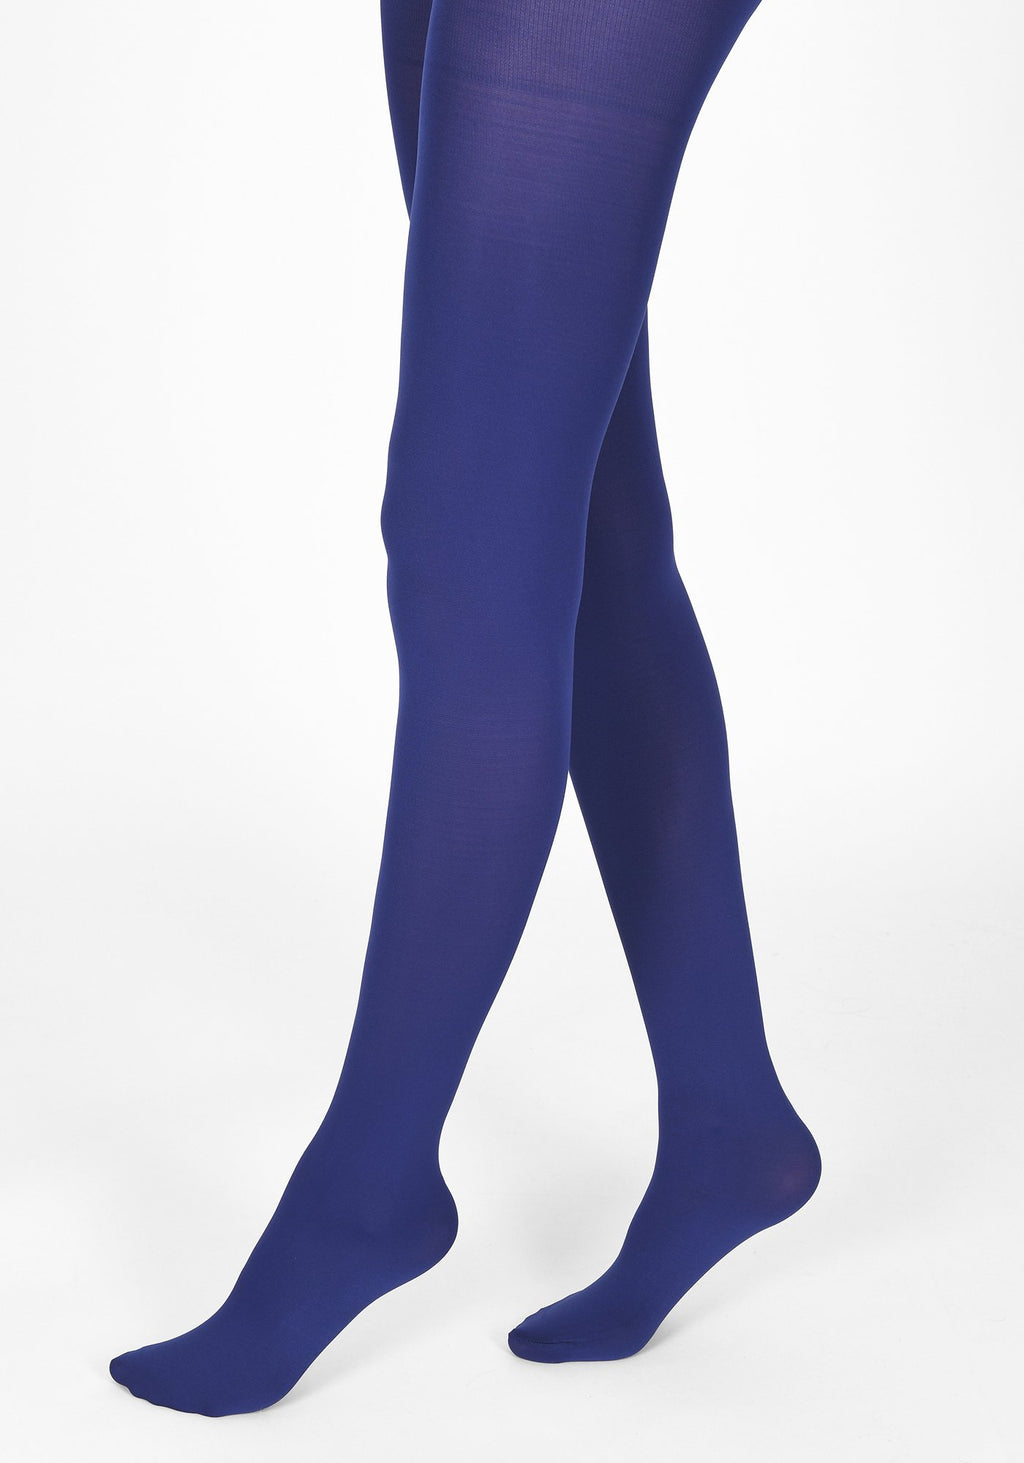 royal blue tights 100 denier 1